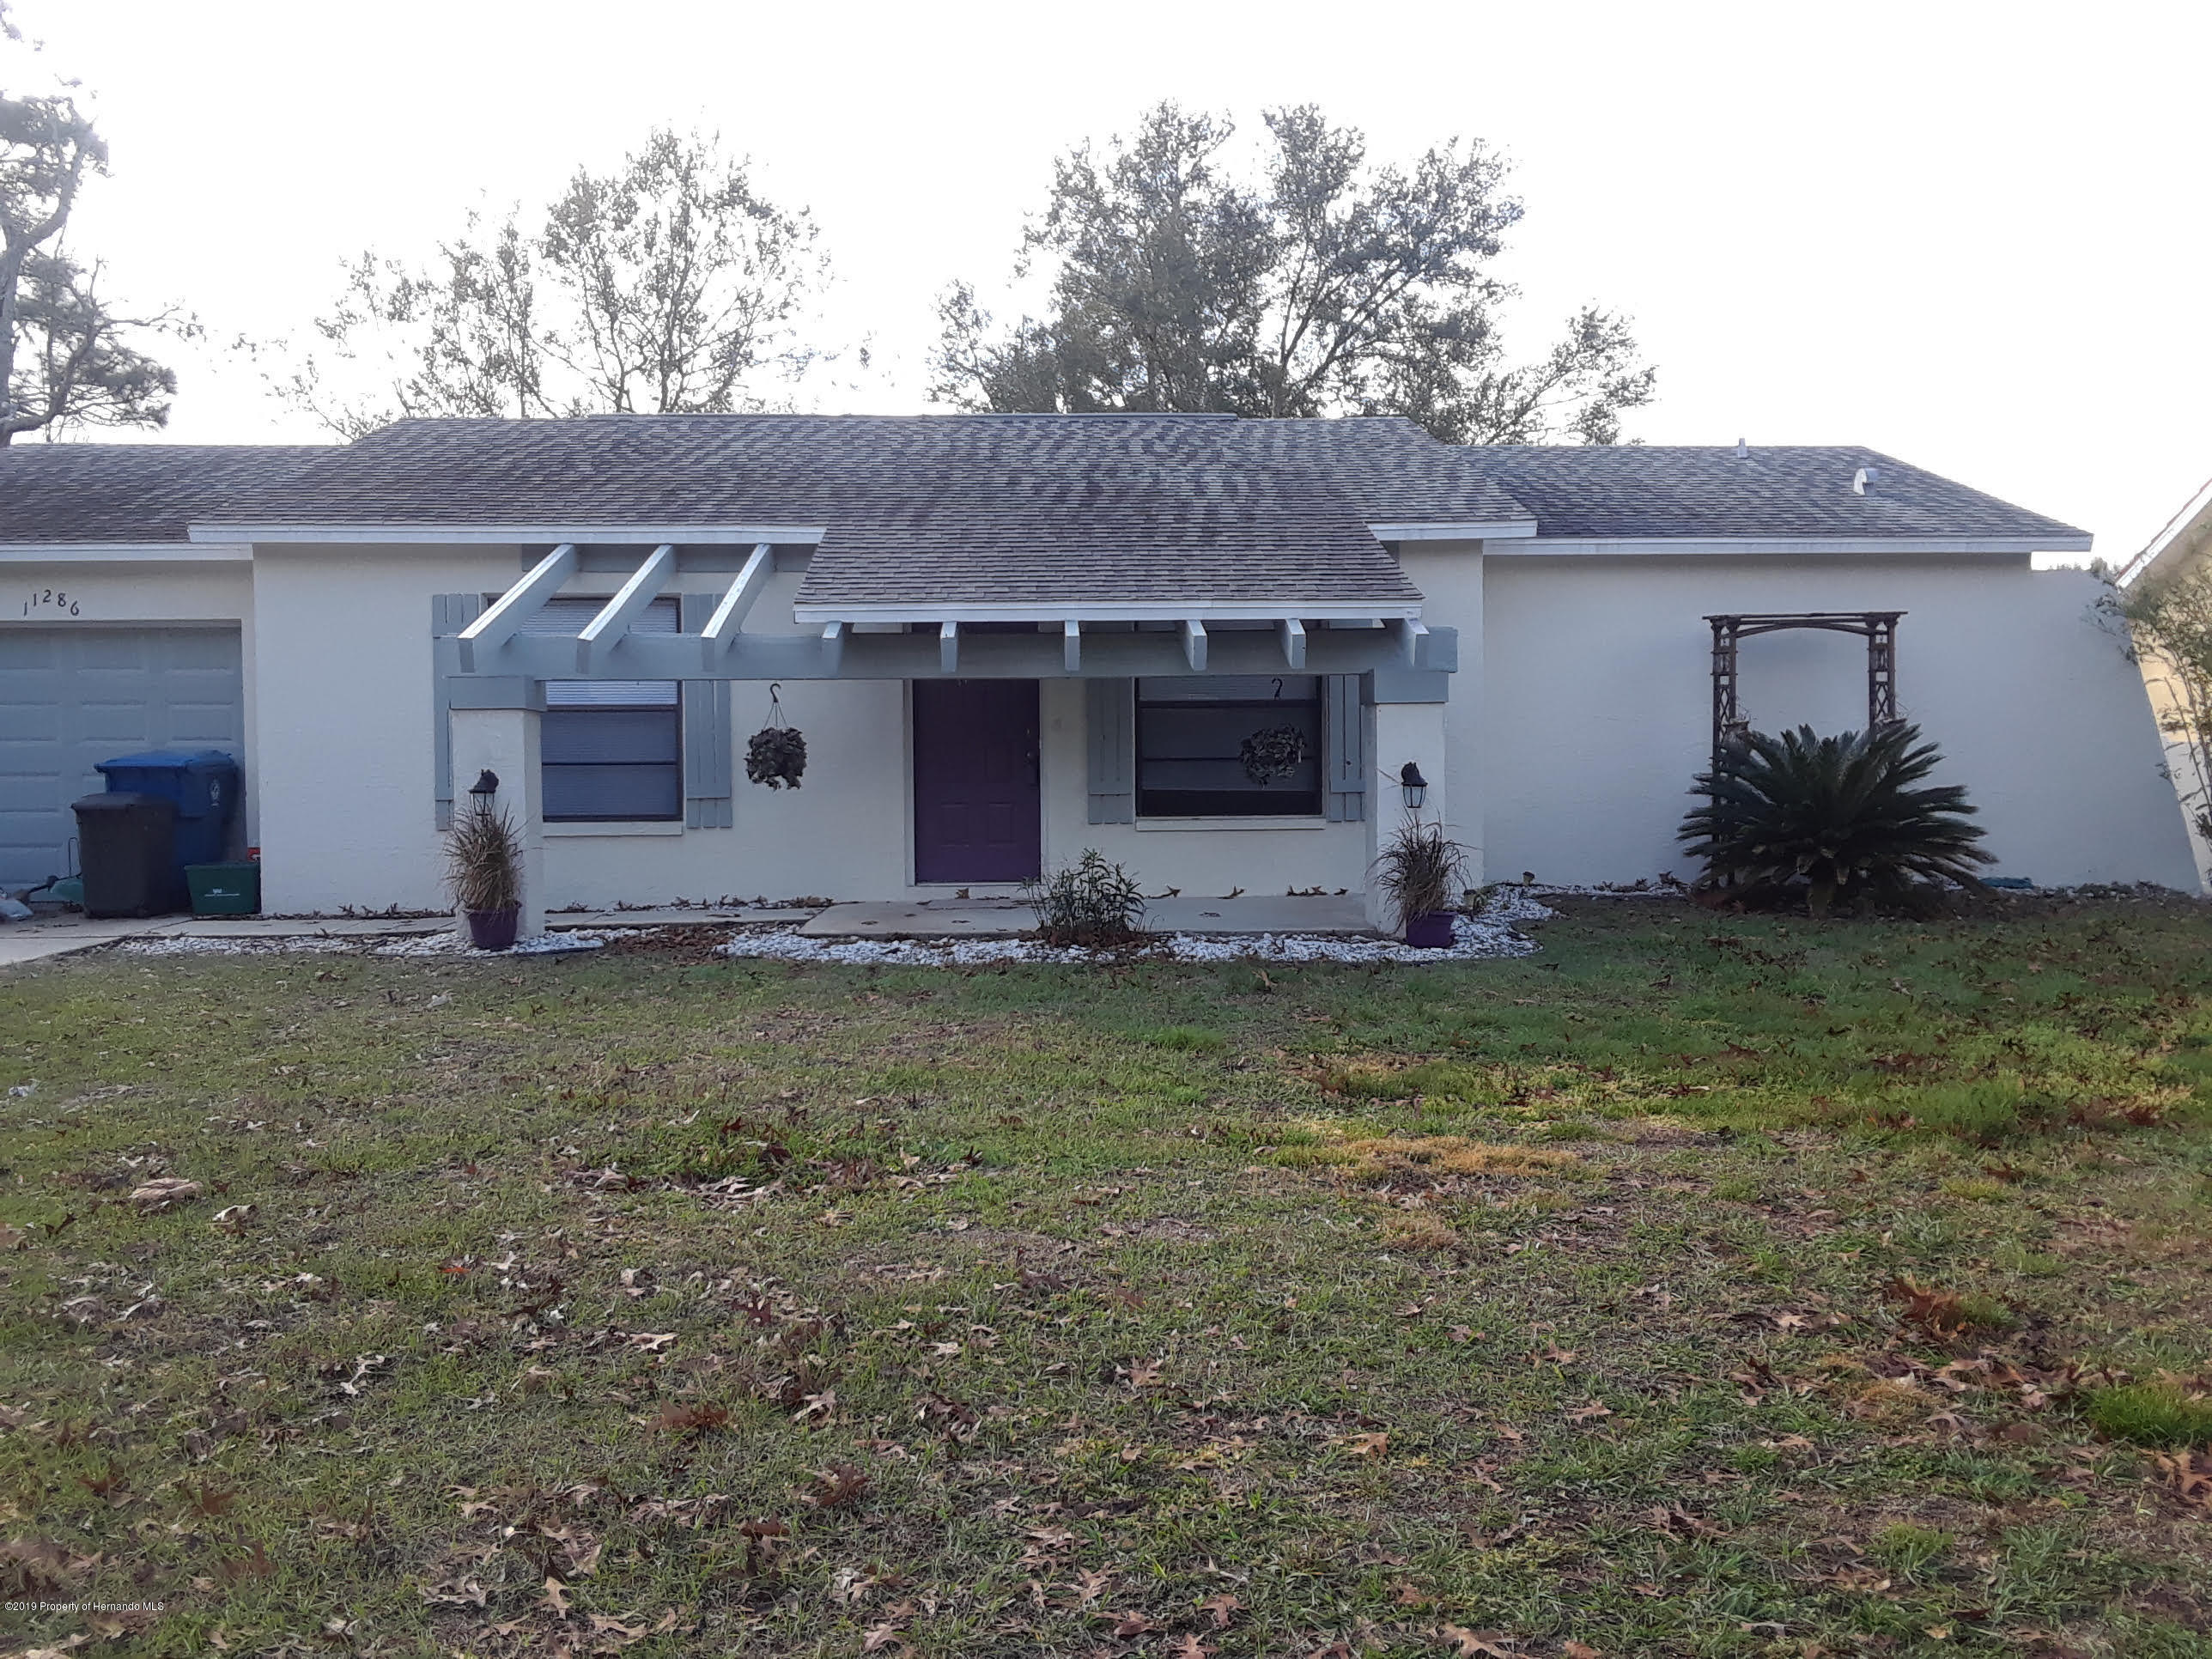 11286 Collingswood Street, Spring Hill, Florida 34608, 2 Bedrooms Bedrooms, ,2 BathroomsBathrooms,Residential,For Sale,Collingswood,2200562